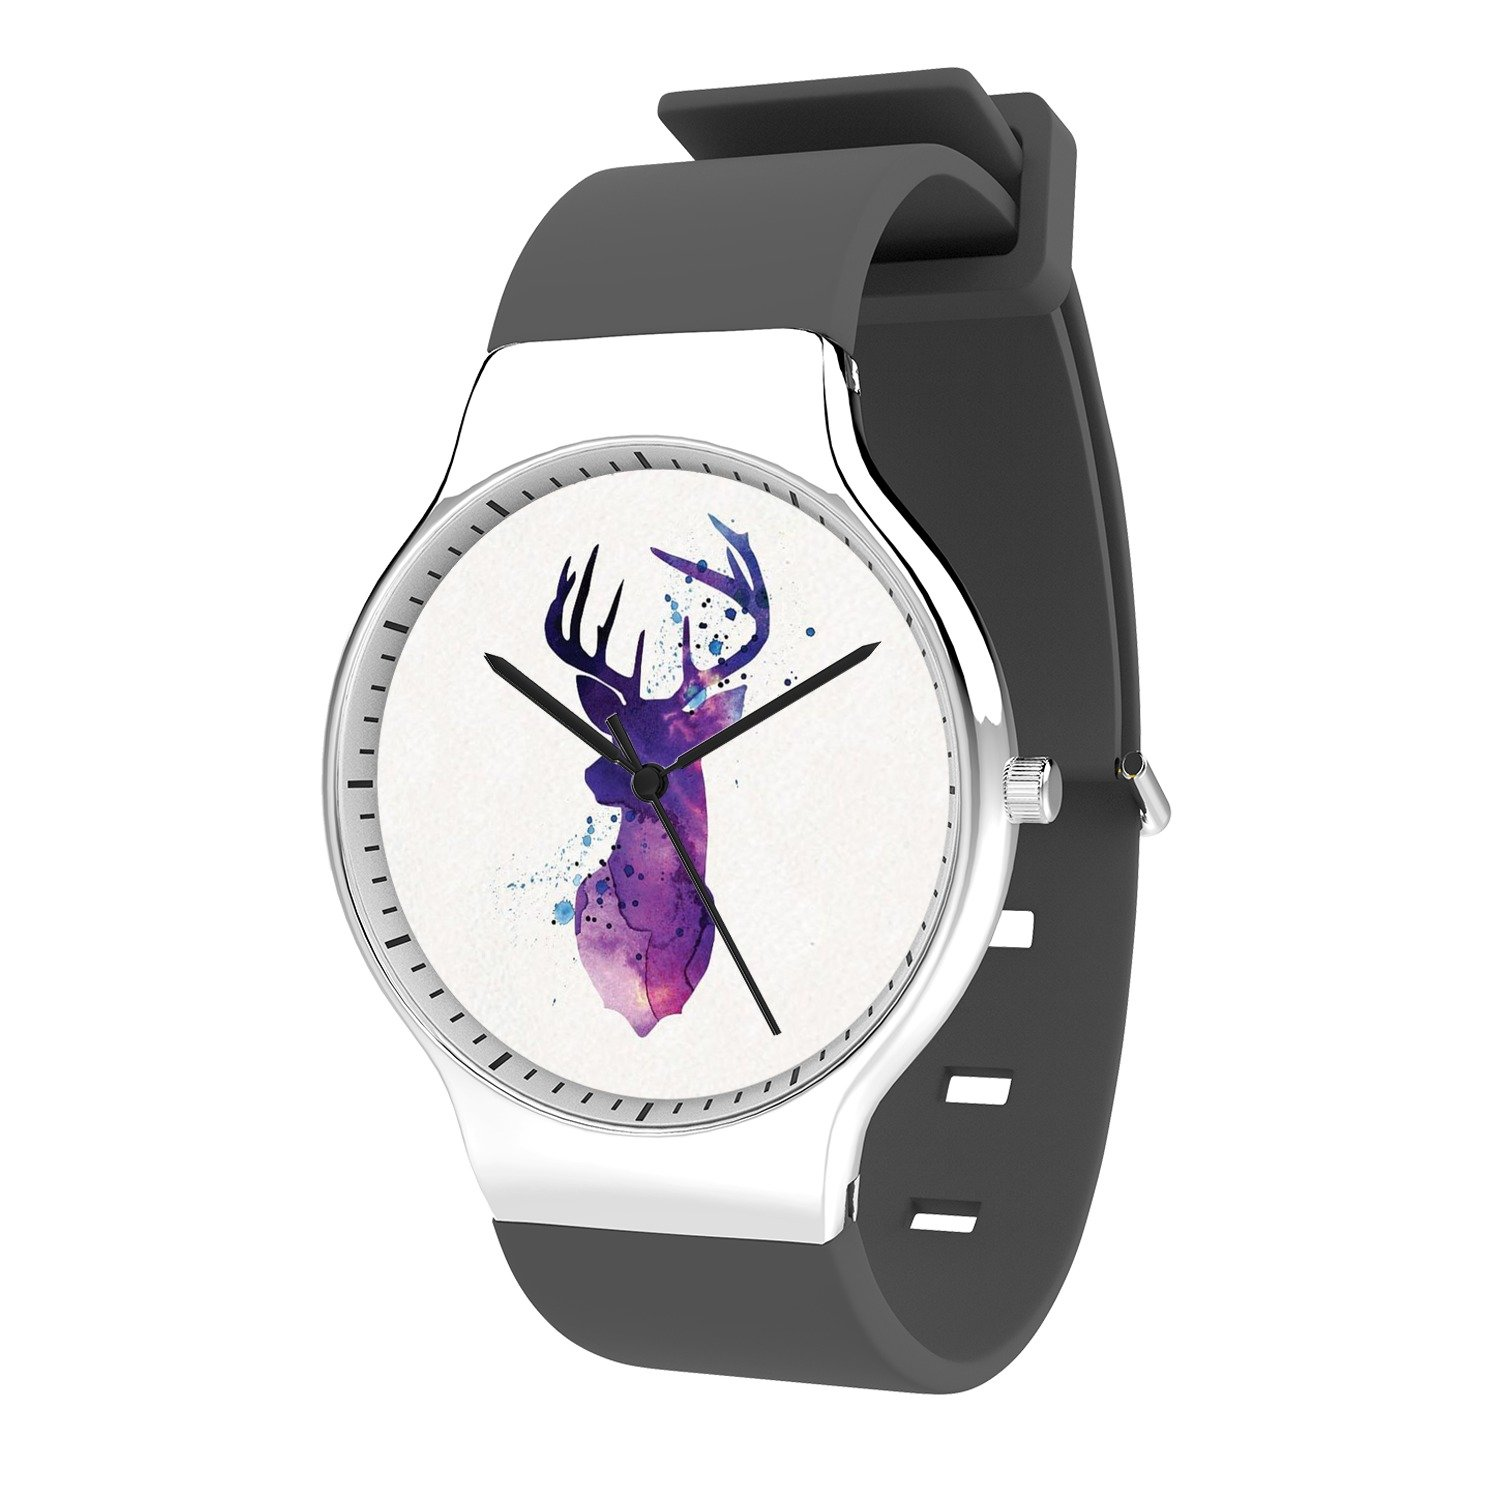 FELOOWSE Animal Watches Deer Watches Men's Quartz Watches, Minimalist Slim Japanese Quartz Youth Silicone Watches, Fashion Practical Waterproof Boys Watch Customized Watches